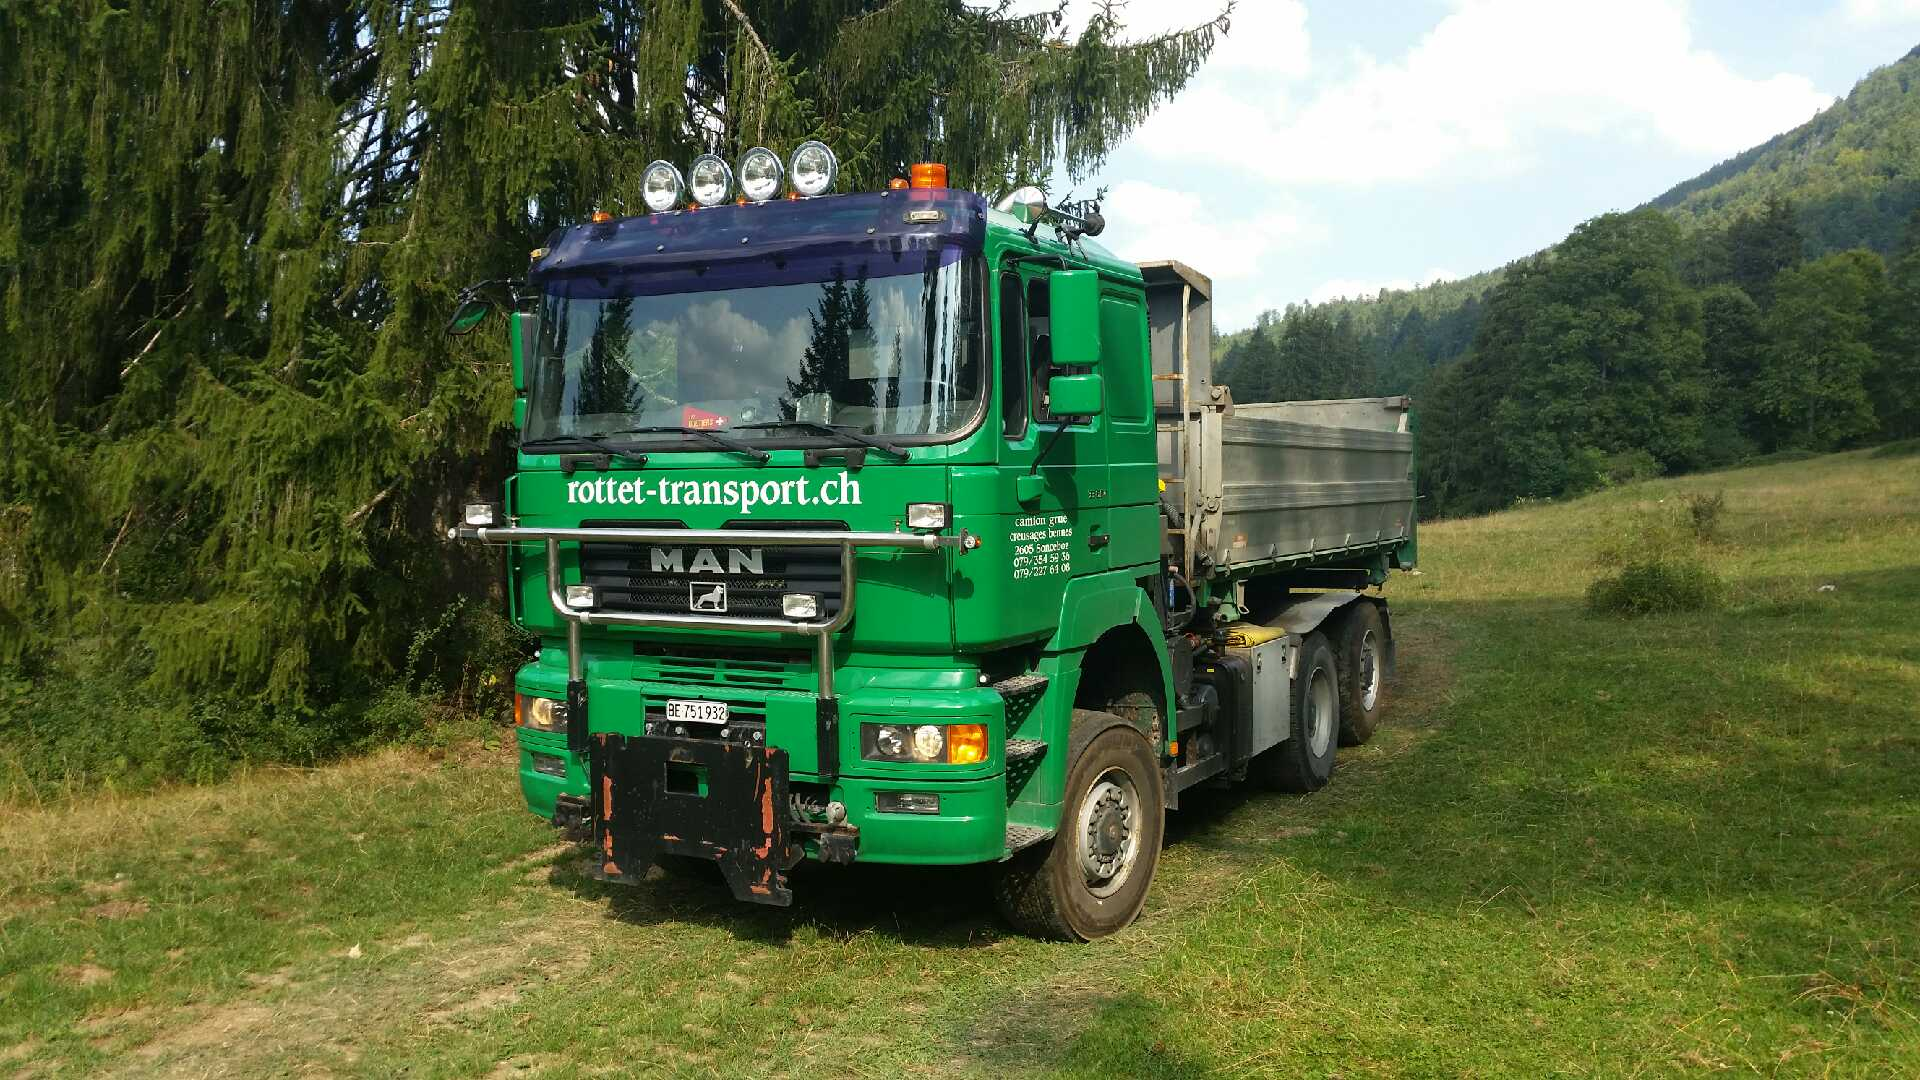 rottet transport